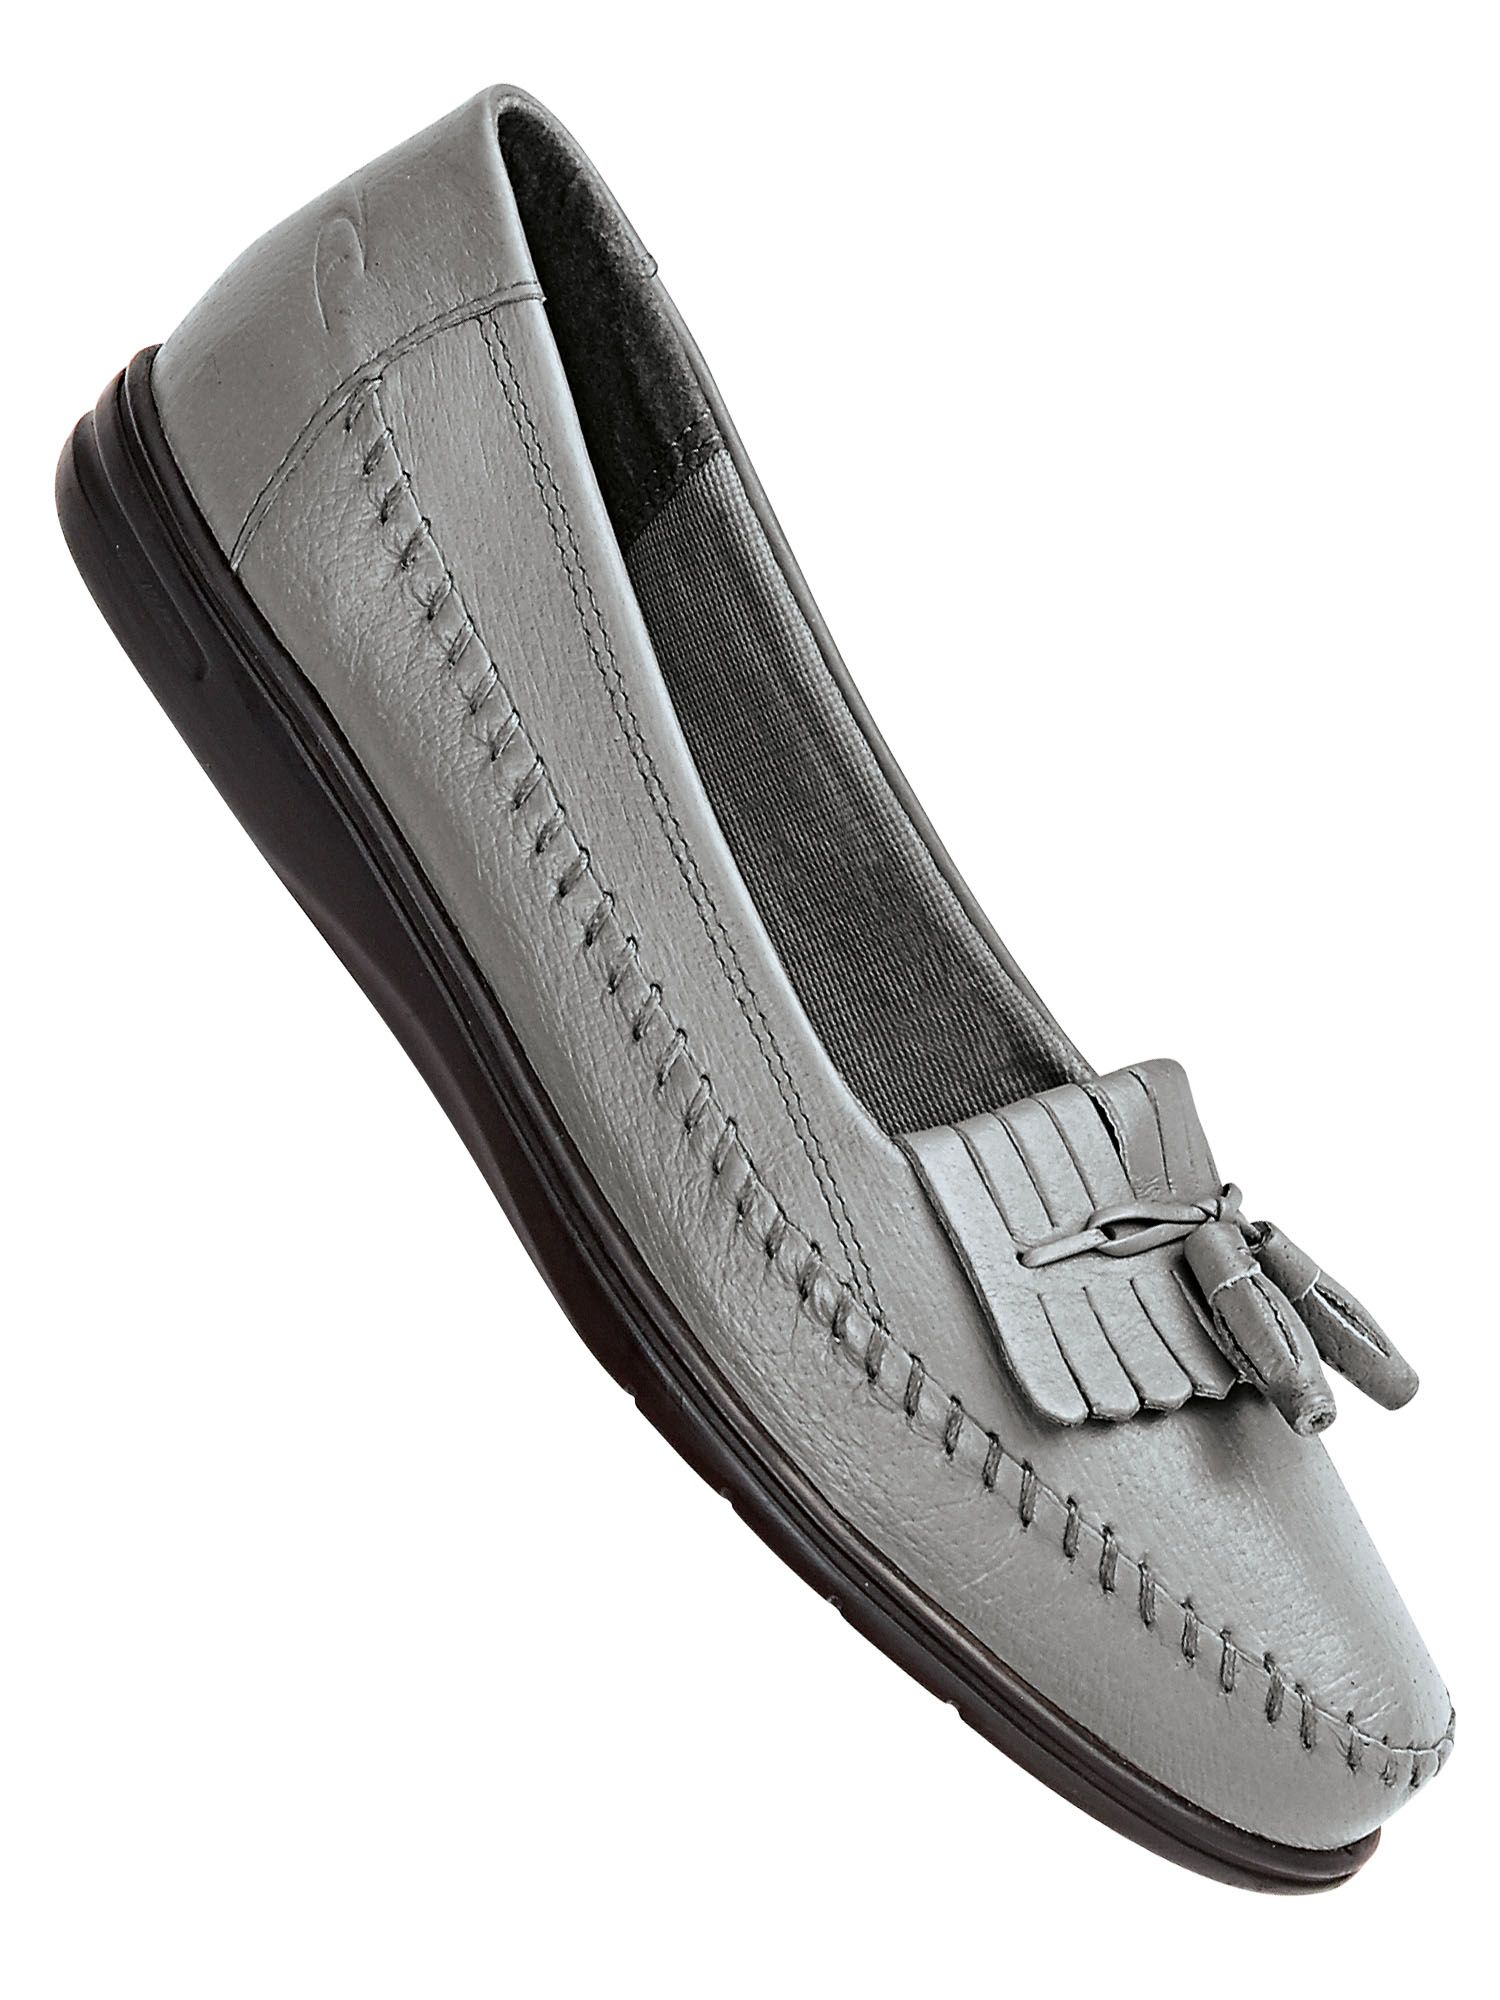 89a921282cd Women s Dr. Scholl s® Leather Kiltie Tassel Loafers. Tap to zoom